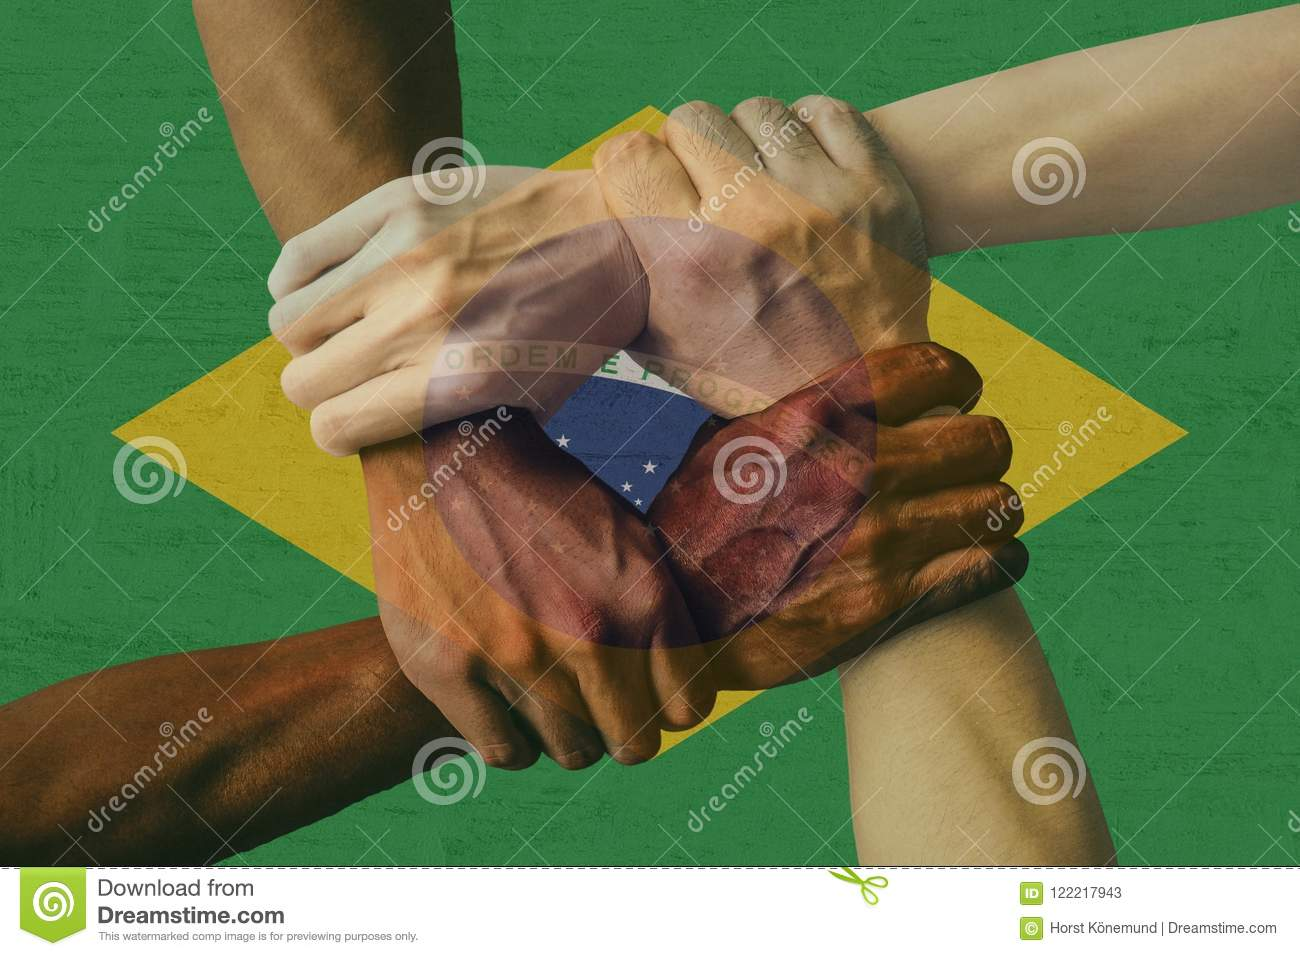 Brazil flag multicultural group of young people integration diversity